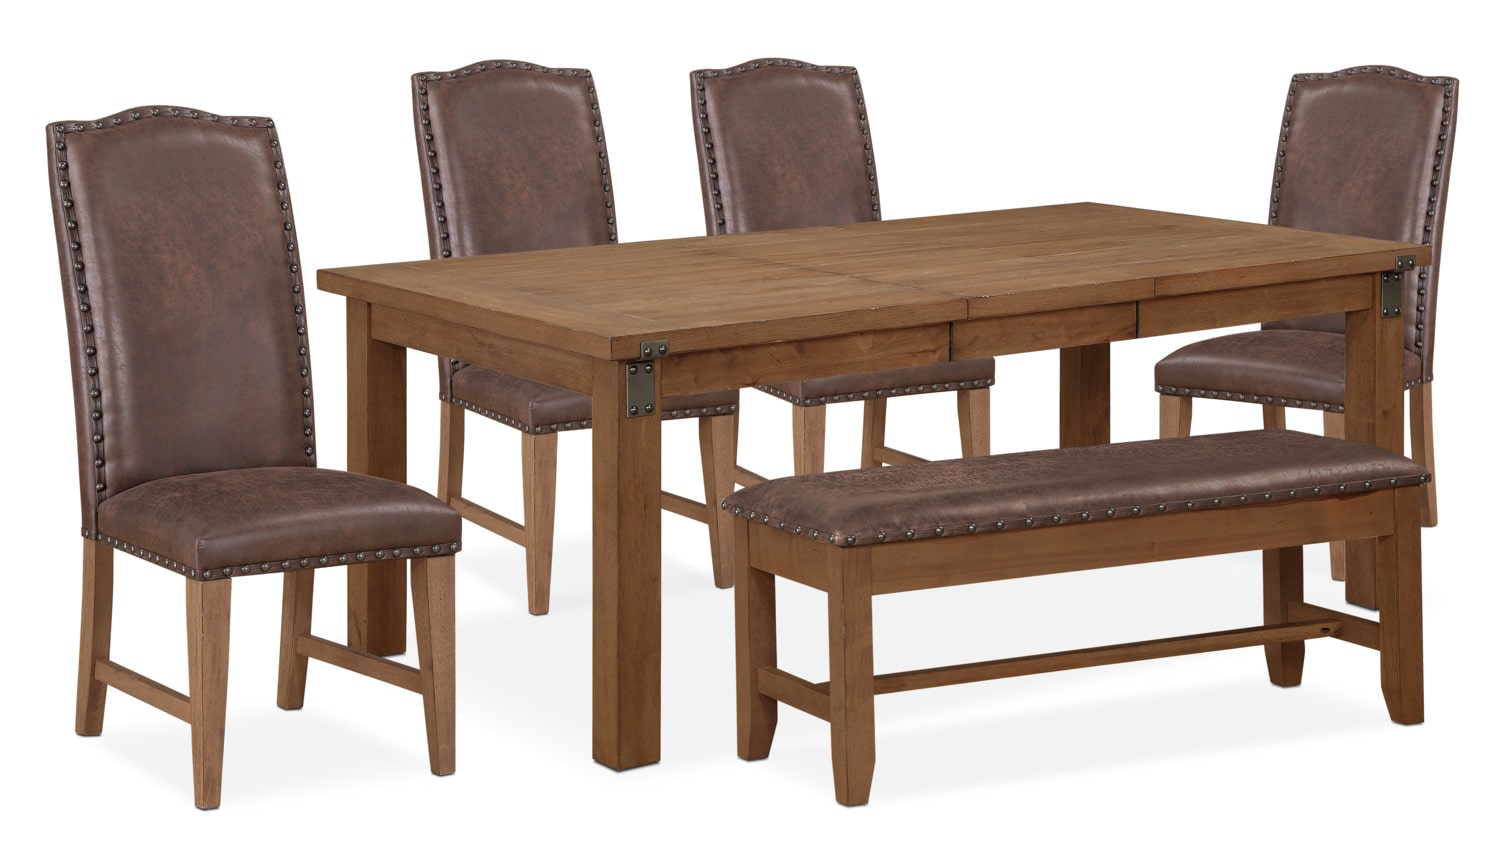 Brilliant Hampton Dining Table 4 Upholstered Side Chairs And Storage Bench Caraccident5 Cool Chair Designs And Ideas Caraccident5Info